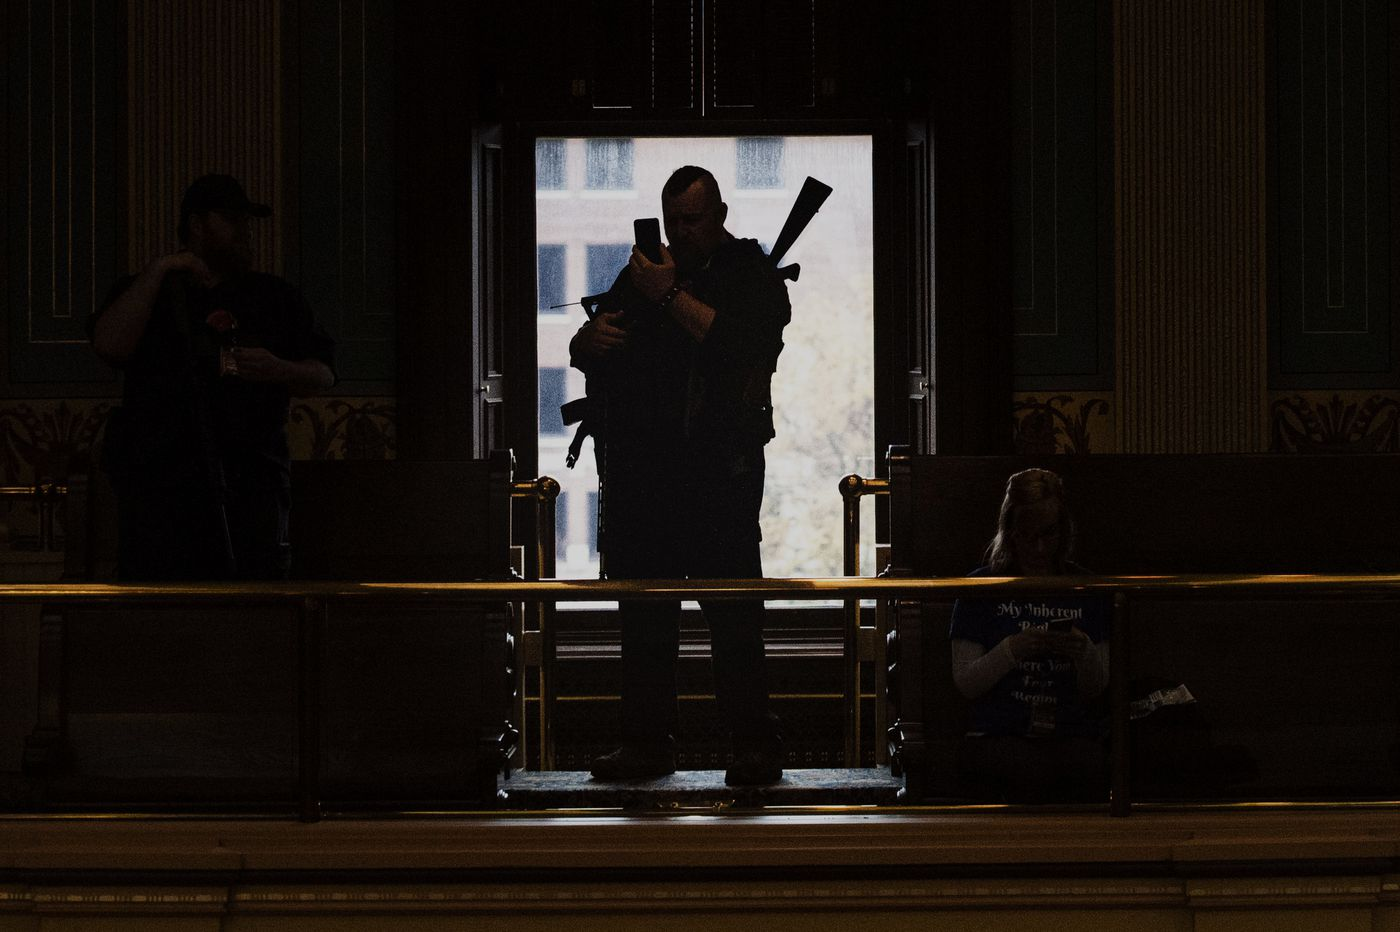 Michigan militia's march on state house puts armed protest in the spotlight